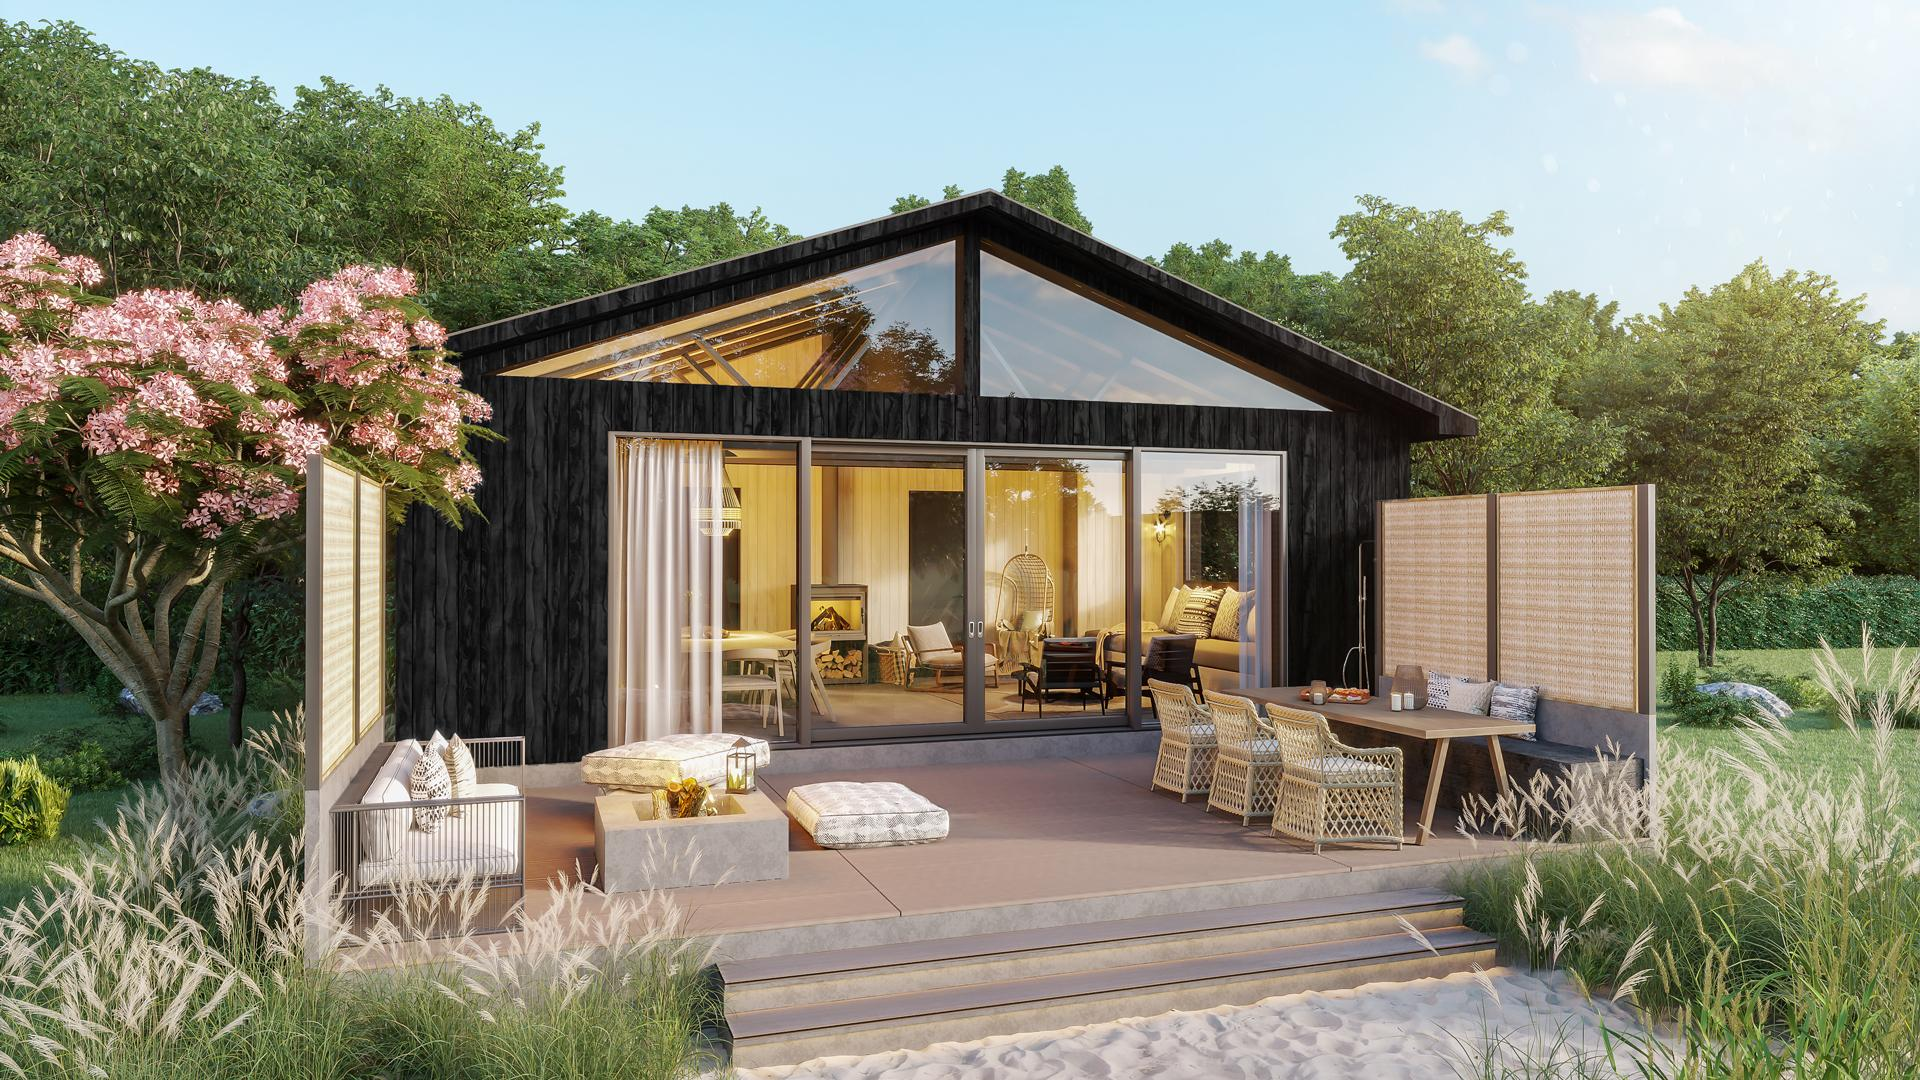 Ontario's coolest cabins to rent | Outside a cabin at Wander resort in Prince Edward County, Ontario